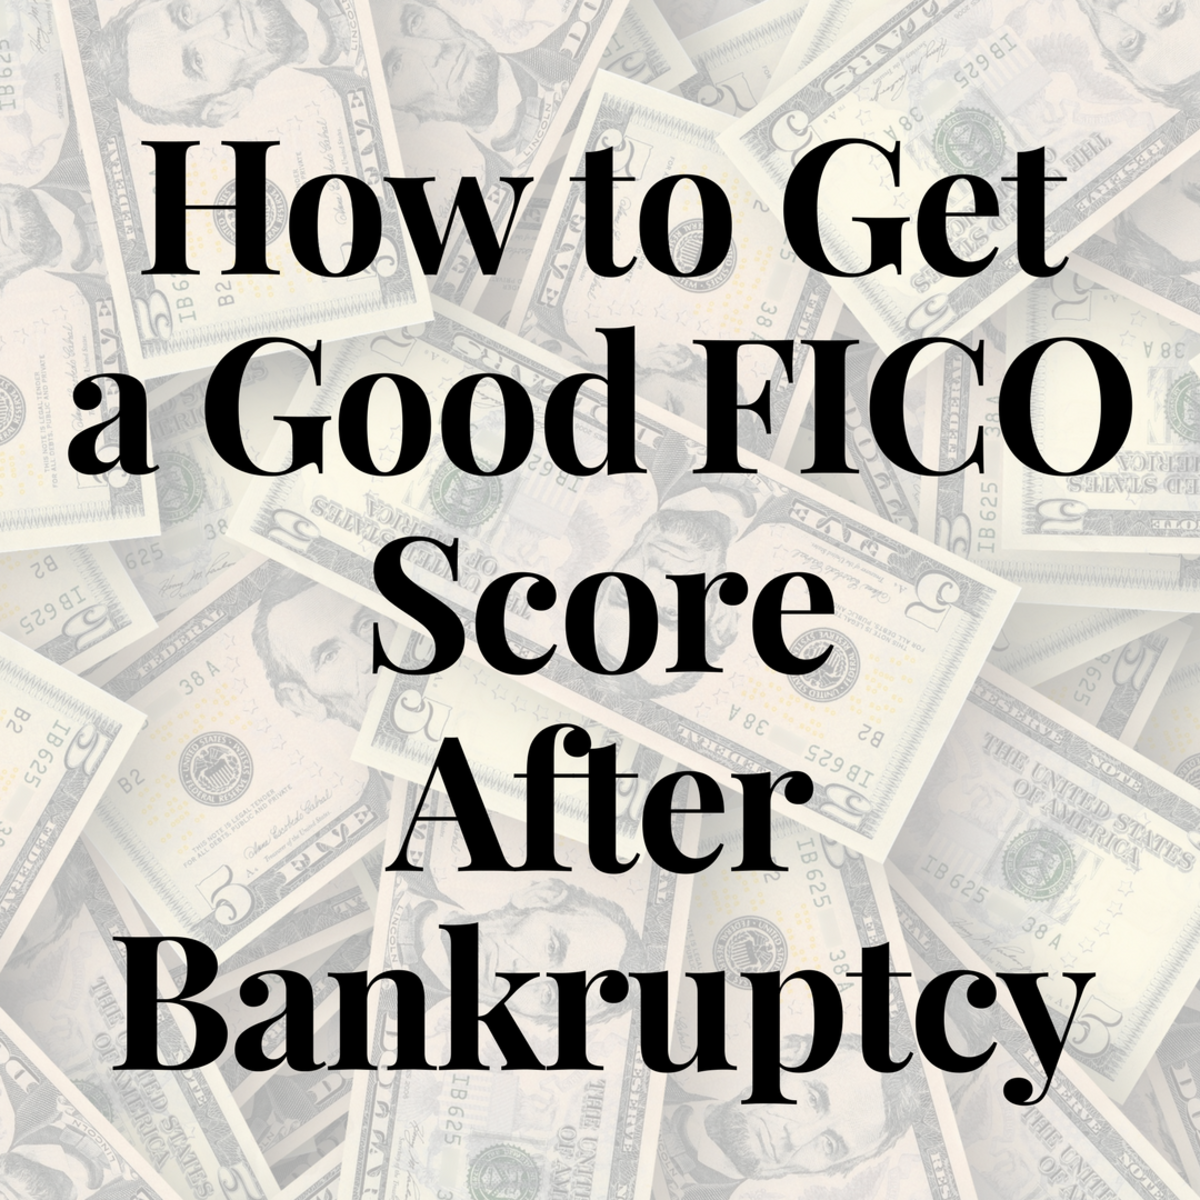 Here are the five things I did to get a good FICO score after bankruptcy.